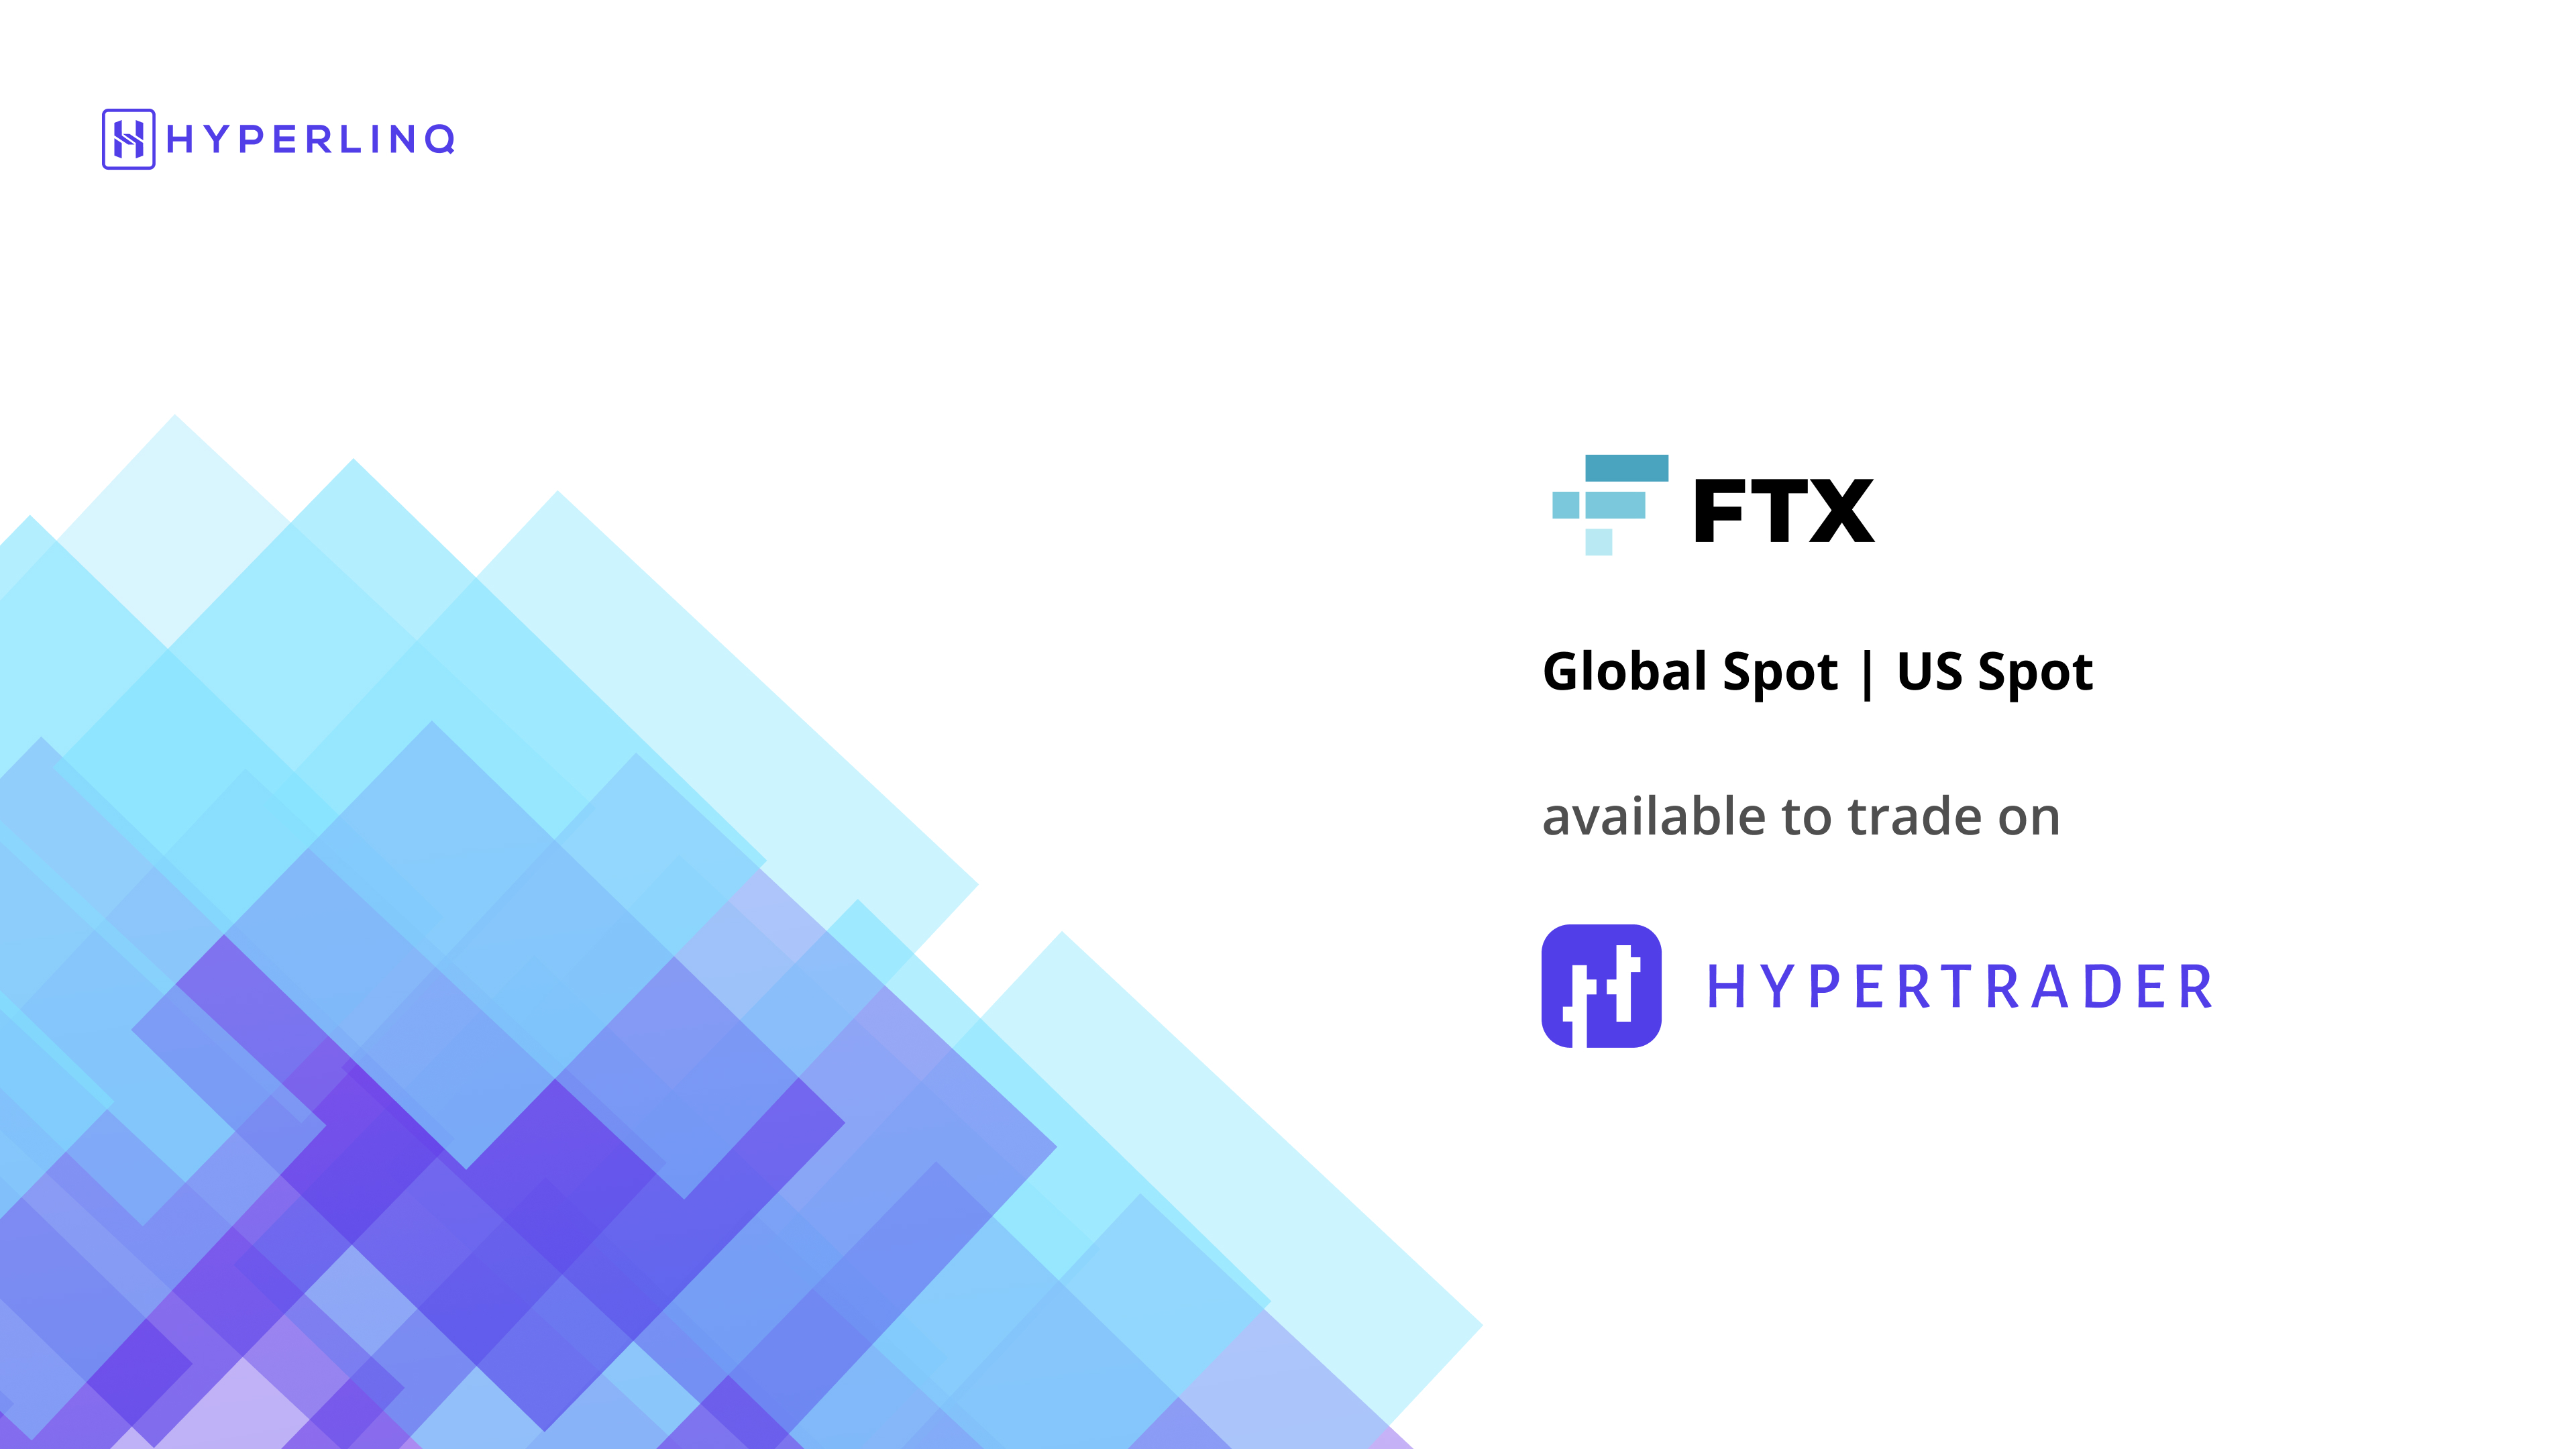 Announcement: Trade on FTX Global & US Spot with HyperTrader